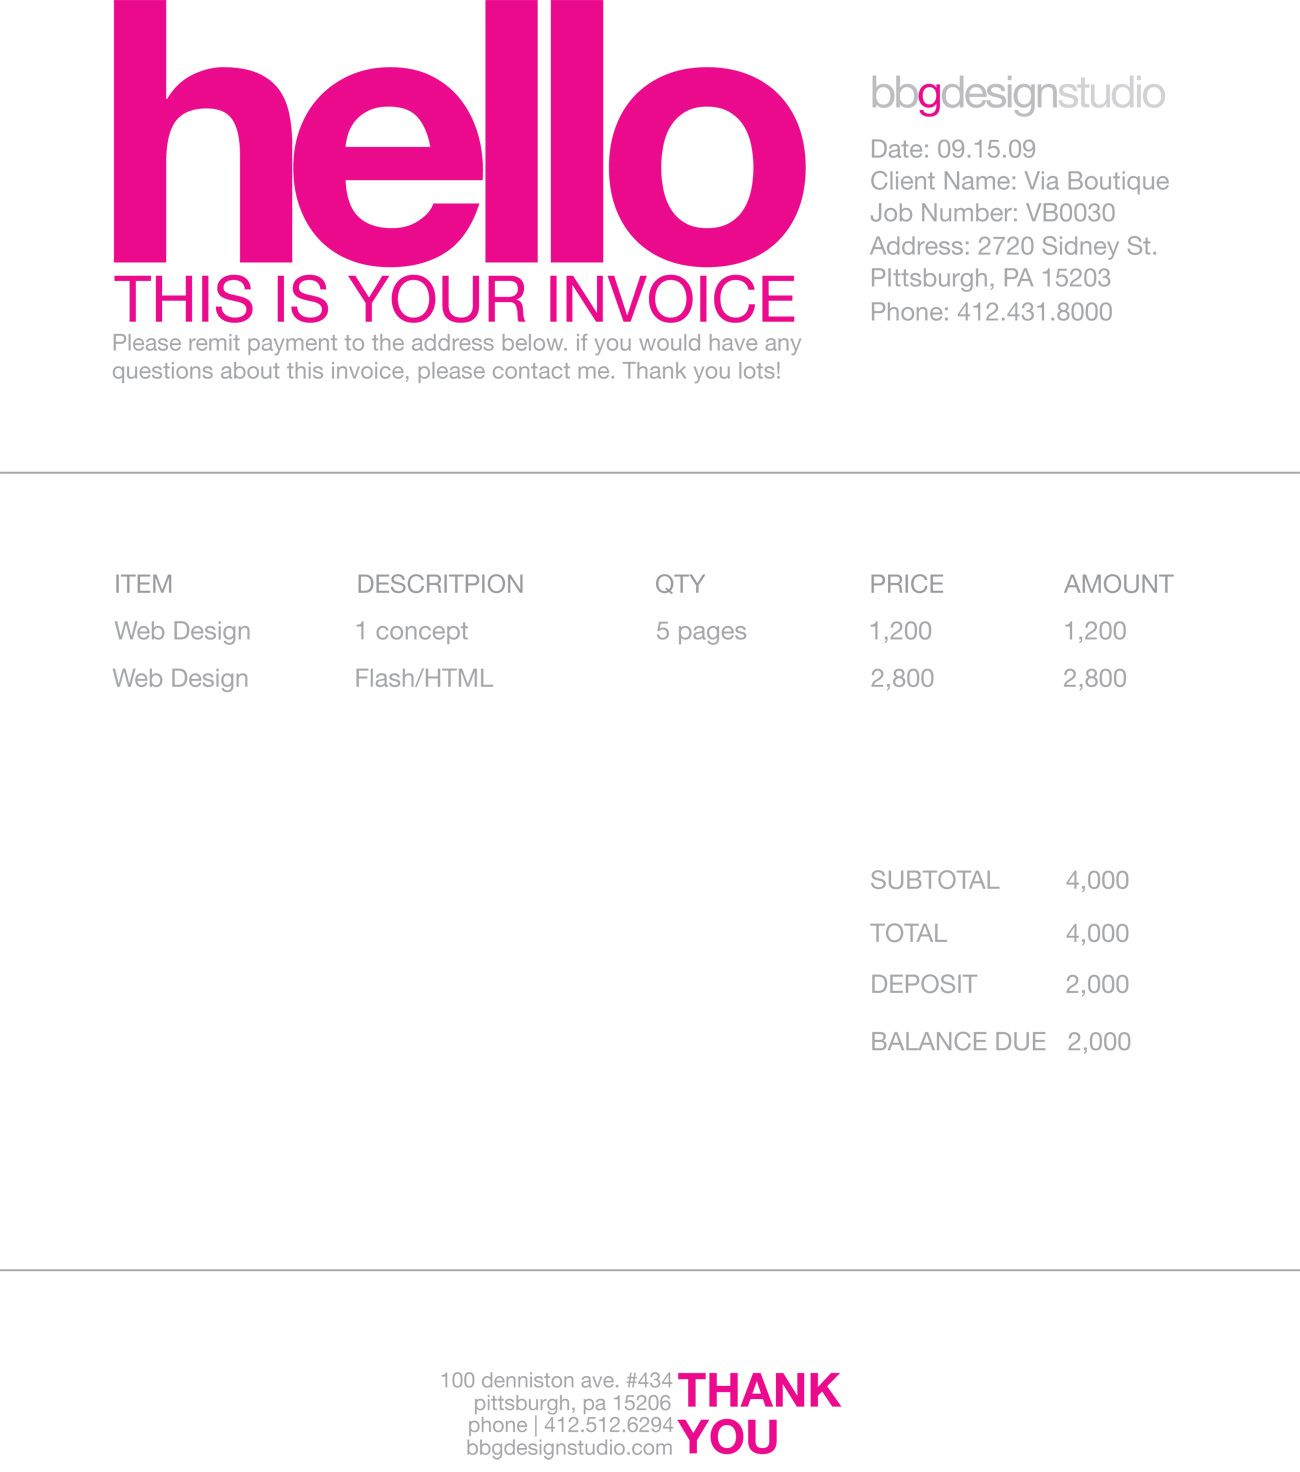 Darkfaderus  Remarkable  Images About Invoice Design On Pinterest With Foxy An Invoice Besides General Contractor Invoice Template Furthermore Nvc Invoice With Archaic Free Invoice Software Download Also Create Your Own Invoice In Addition Printable Invoices Free And Invoices For Free As Well As Dhl Invoice Additionally Pay Invoice Ebay From Pinterestcom With Darkfaderus  Foxy  Images About Invoice Design On Pinterest With Archaic An Invoice Besides General Contractor Invoice Template Furthermore Nvc Invoice And Remarkable Free Invoice Software Download Also Create Your Own Invoice In Addition Printable Invoices Free From Pinterestcom